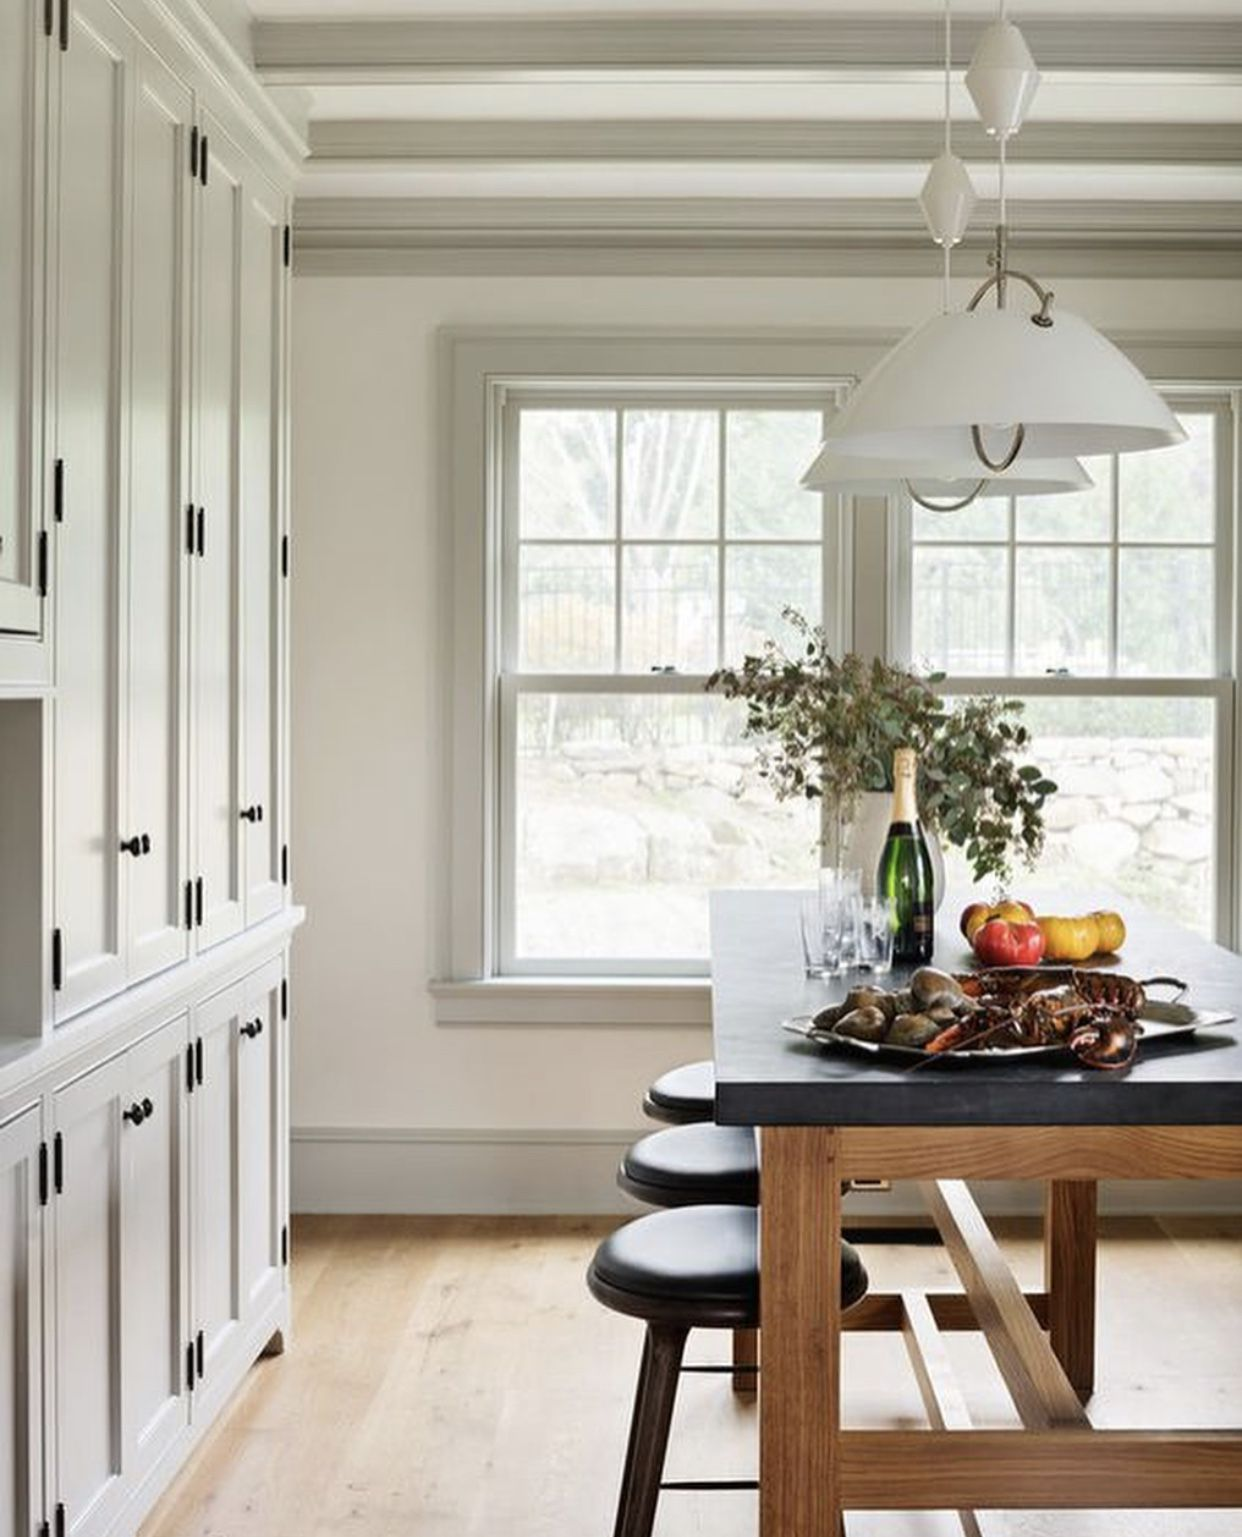 pin by erika howell on kitchens farmhouse interior dining room design farmhouse dining room on kitchen interior farmhouse id=72257